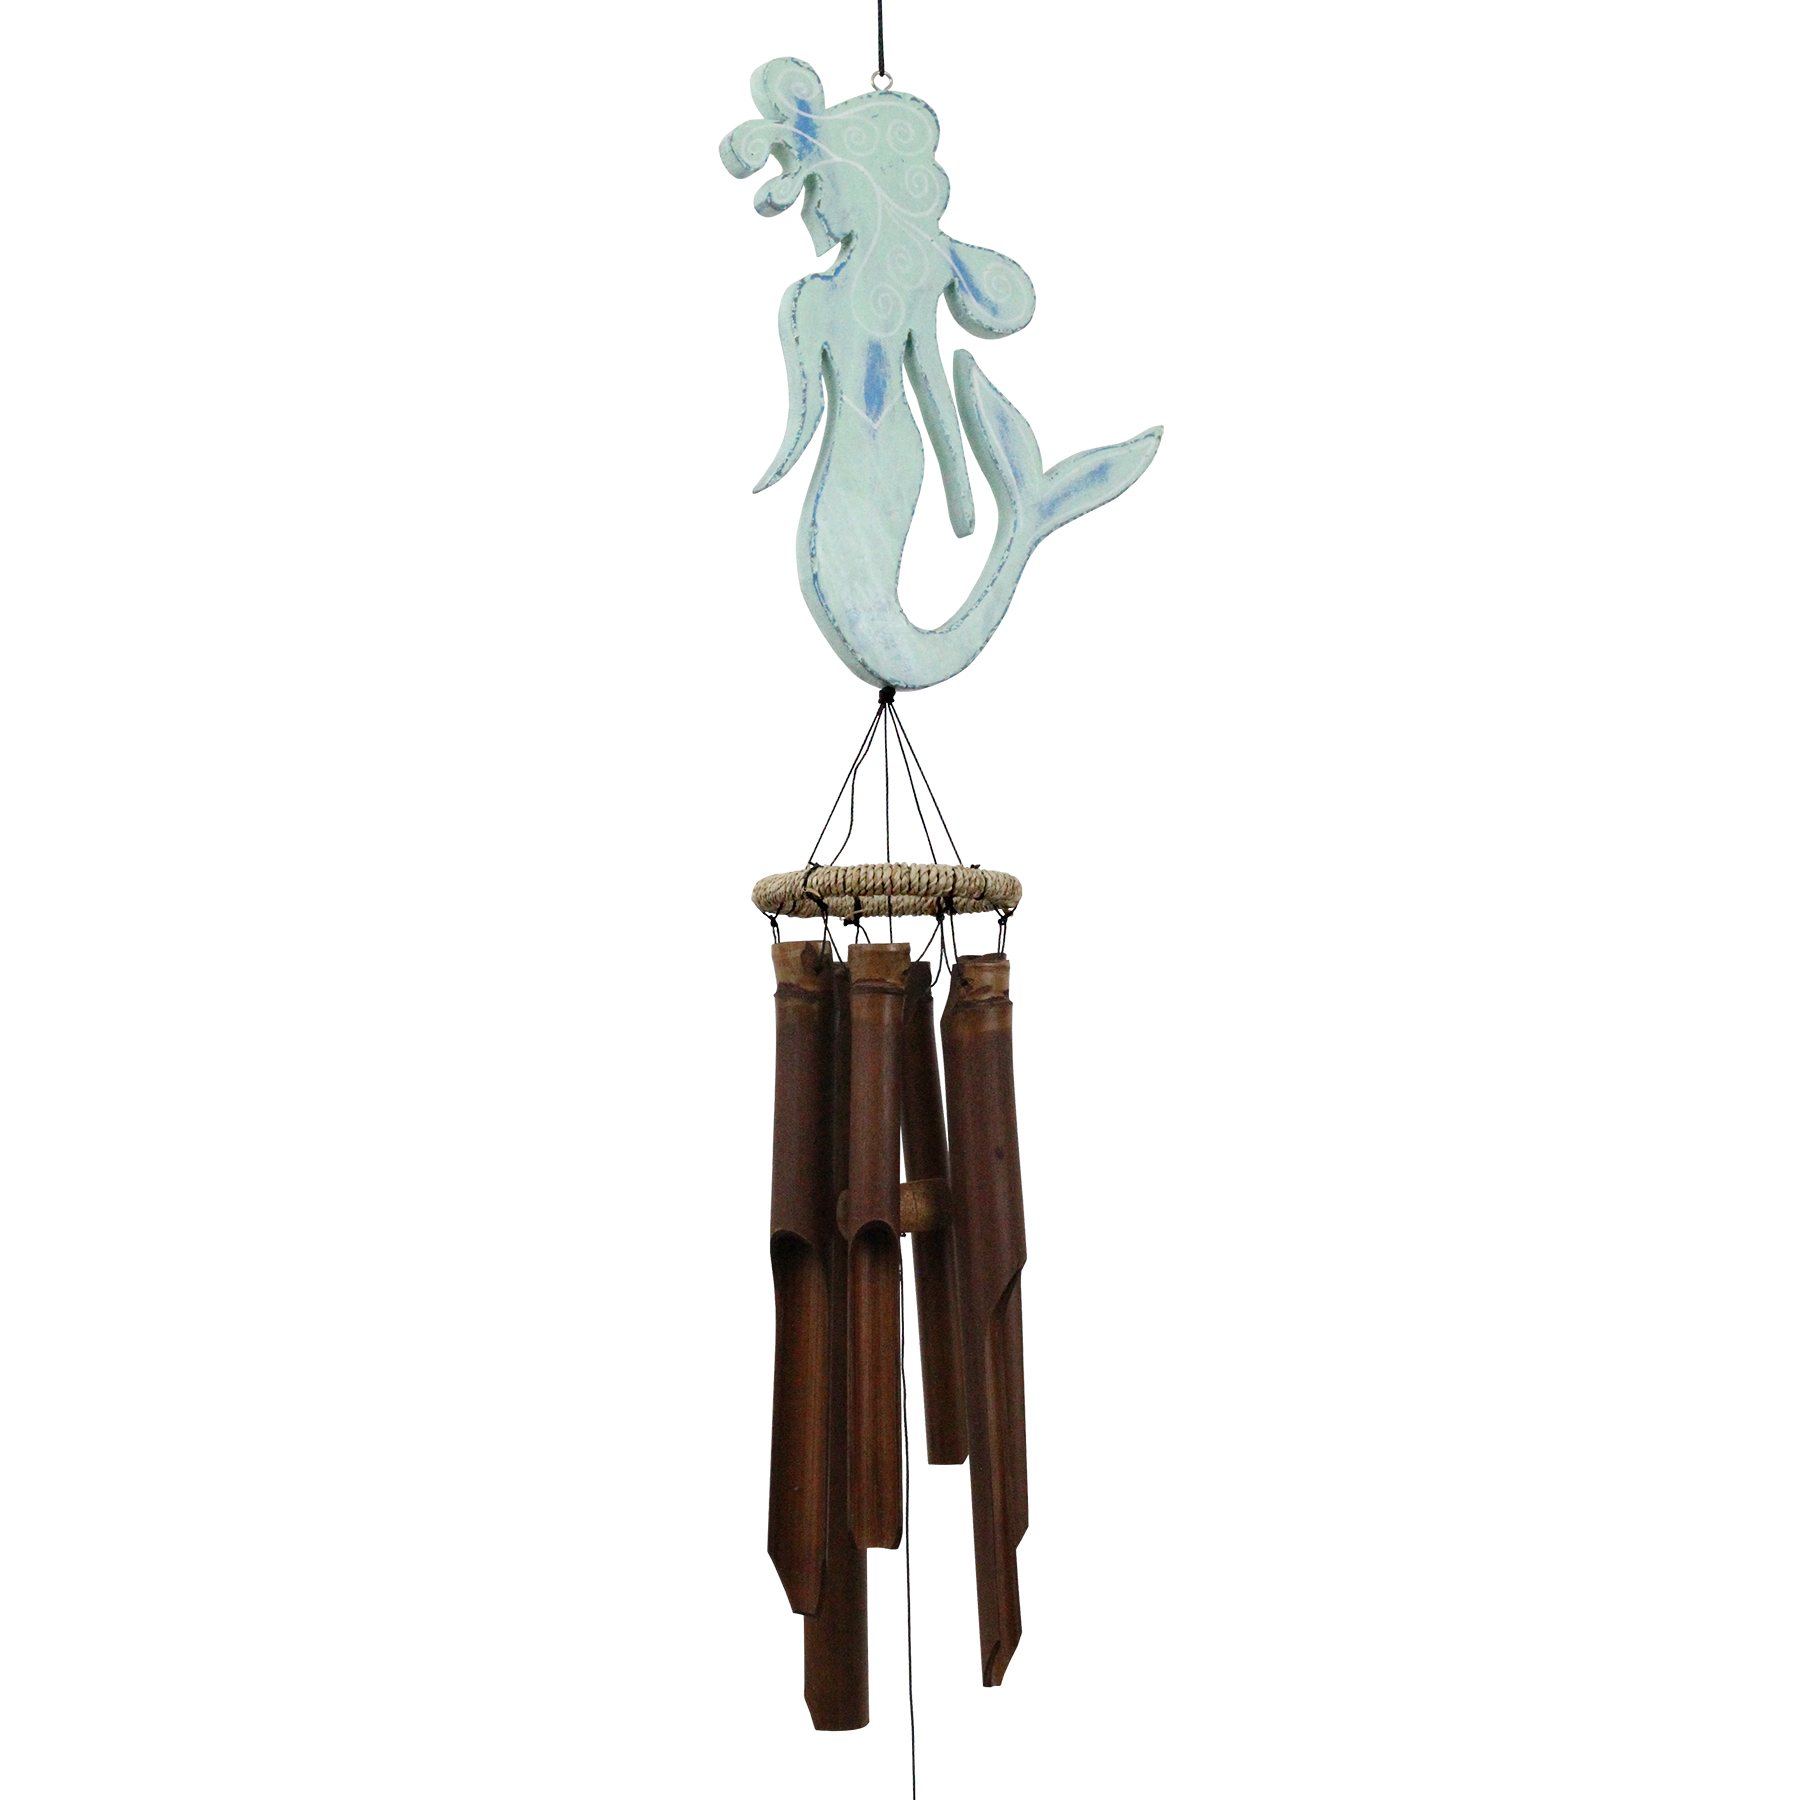 210G - Green Mermaid Bamboo Wind Chime